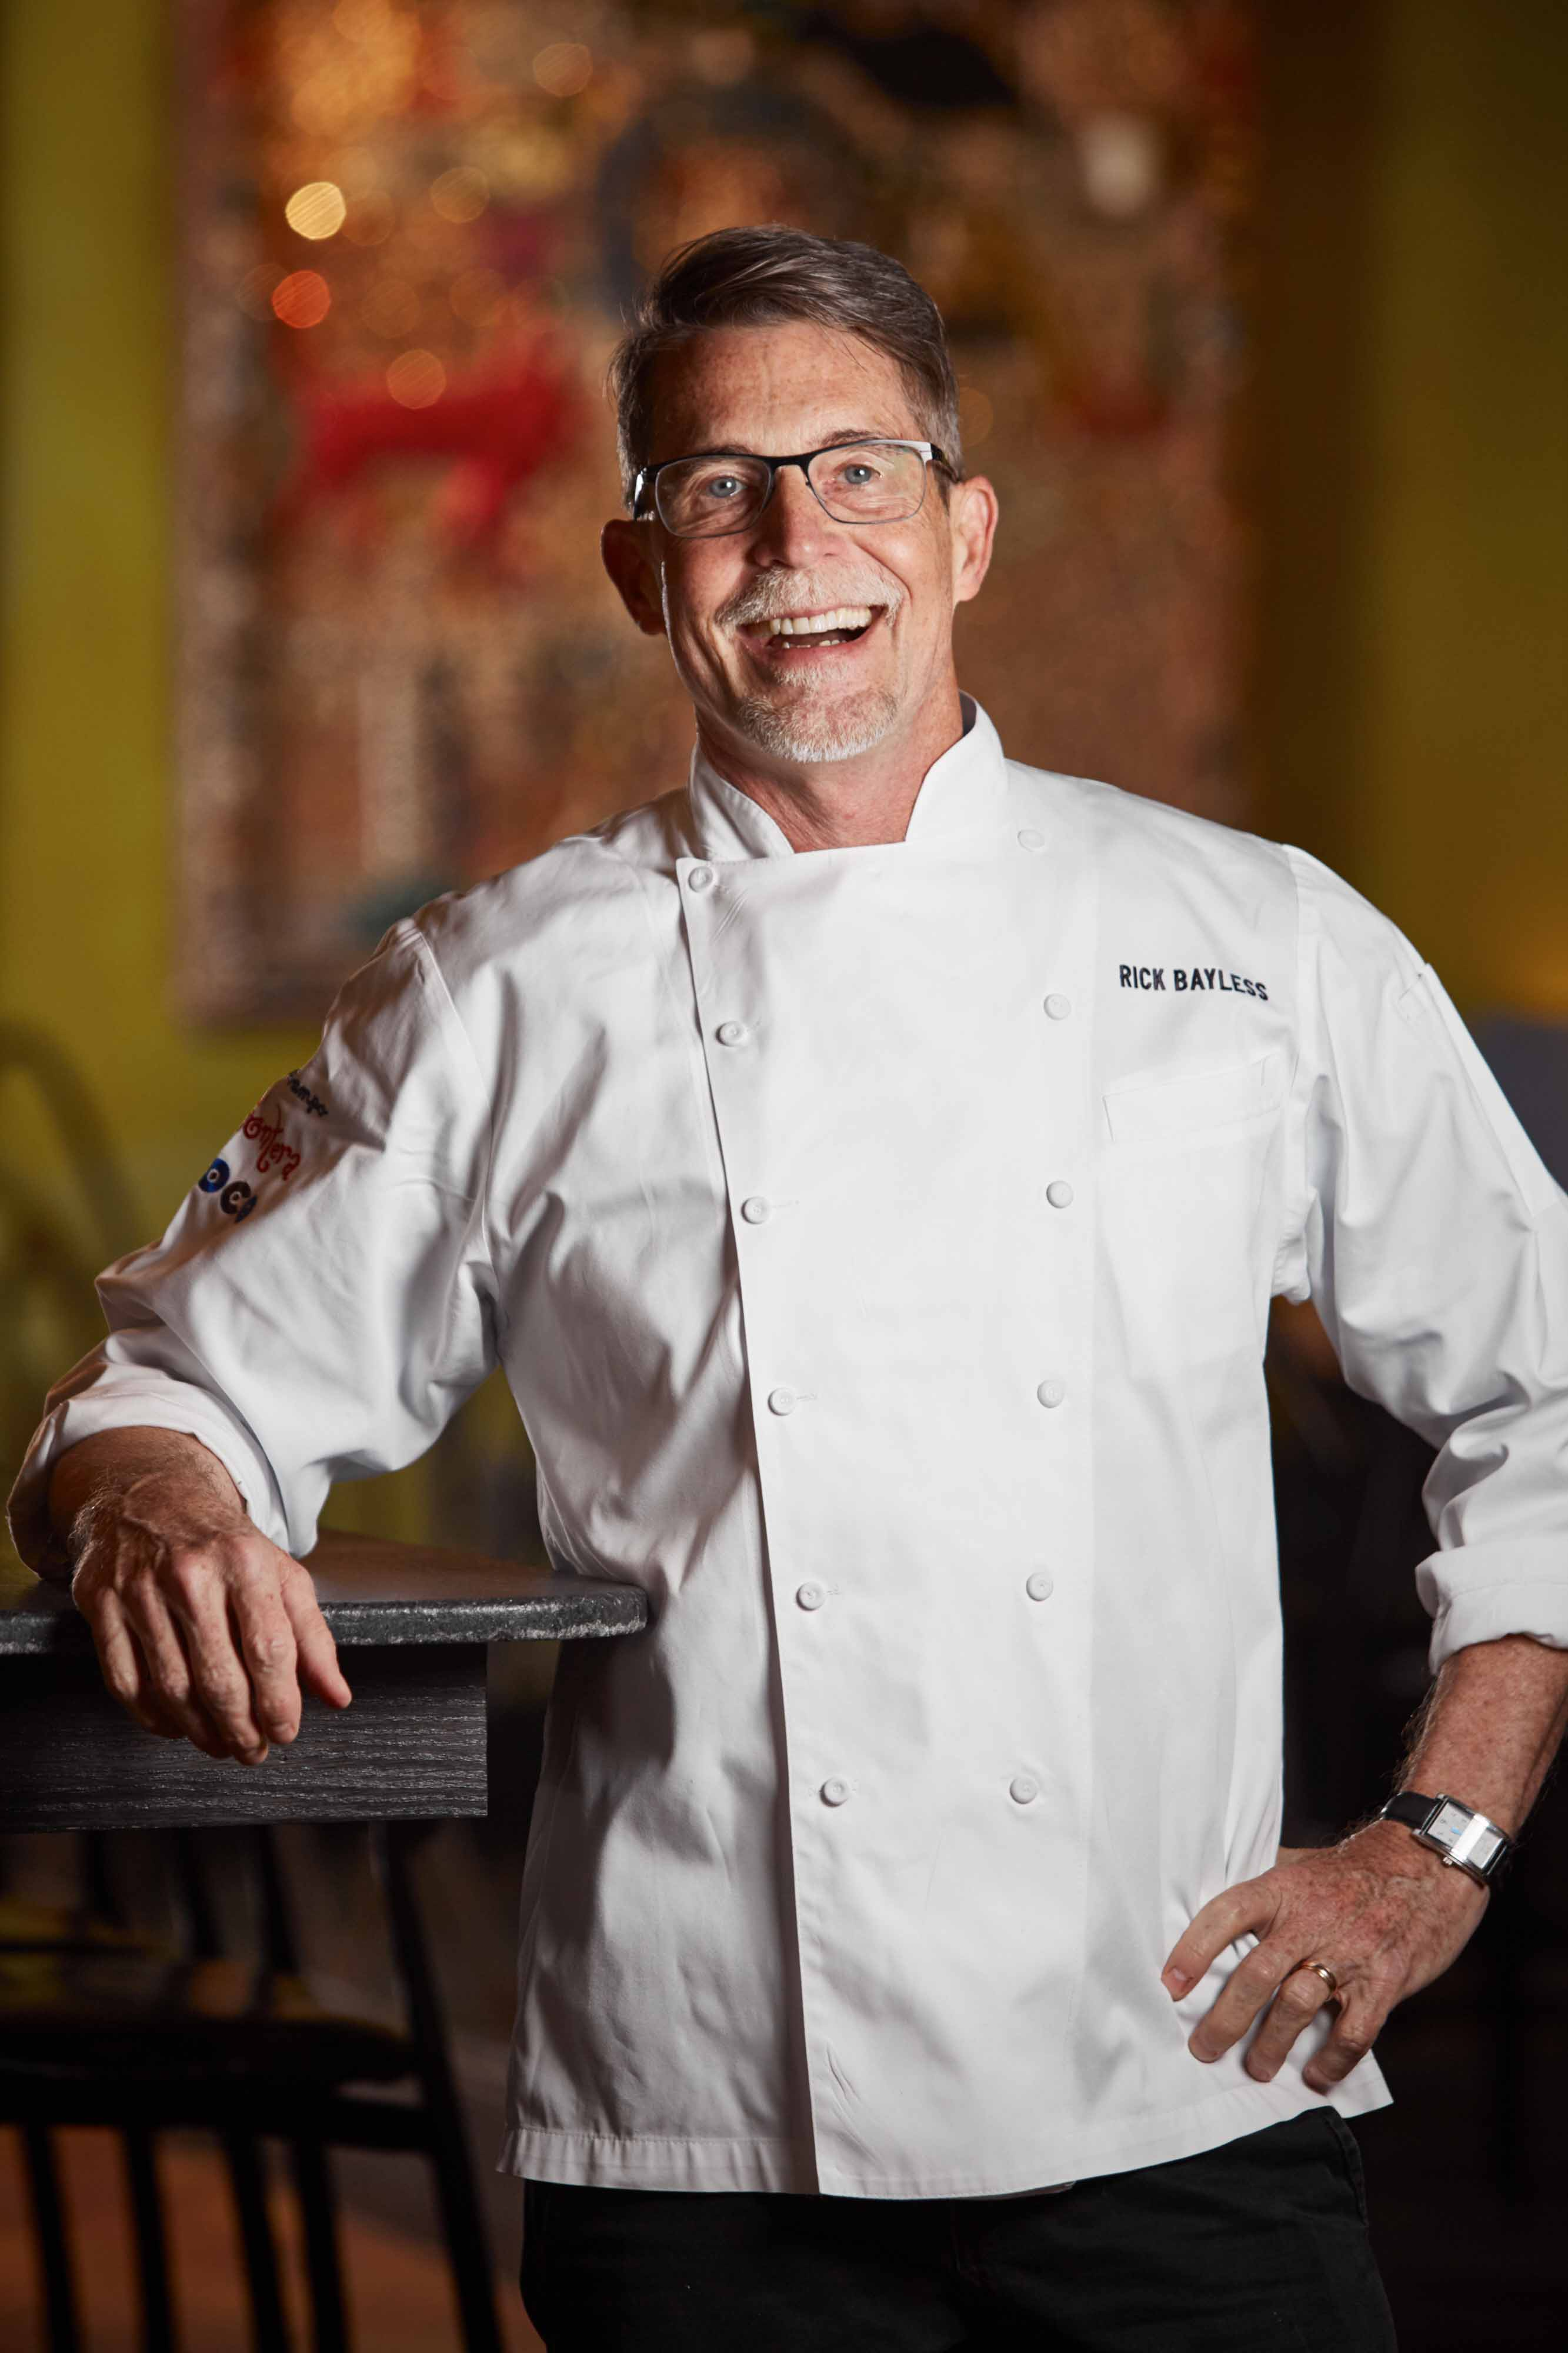 Luncheon and Lecture with Chef Rick Bayless